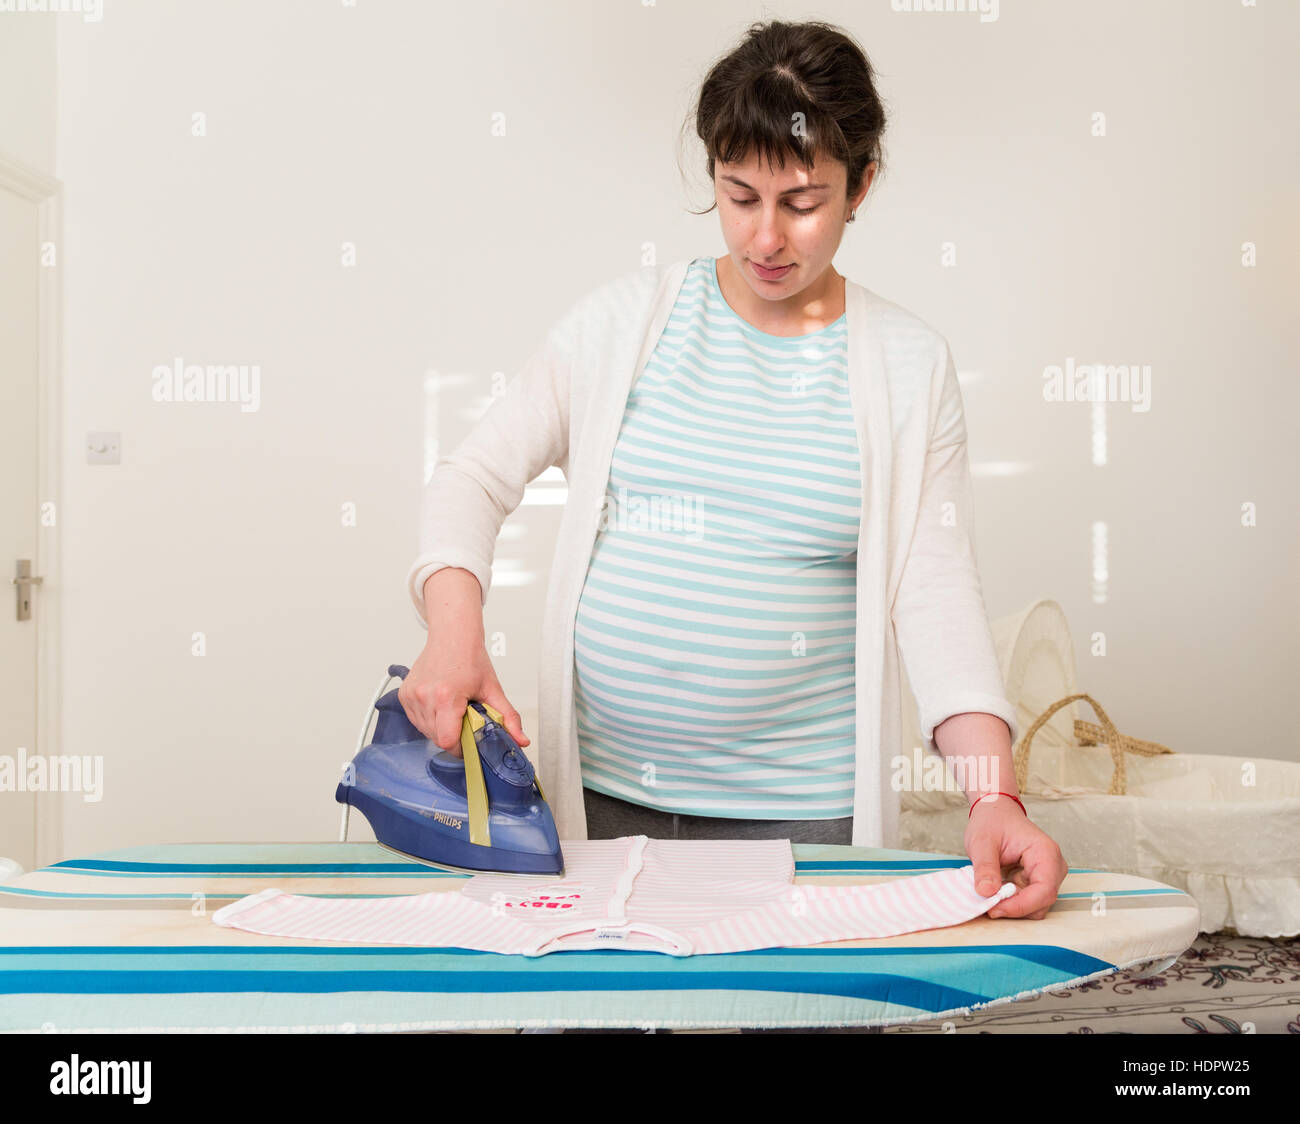 Pregnant woman ironing baby clothes in preparation for baby's arrival, England, UK - Stock Image